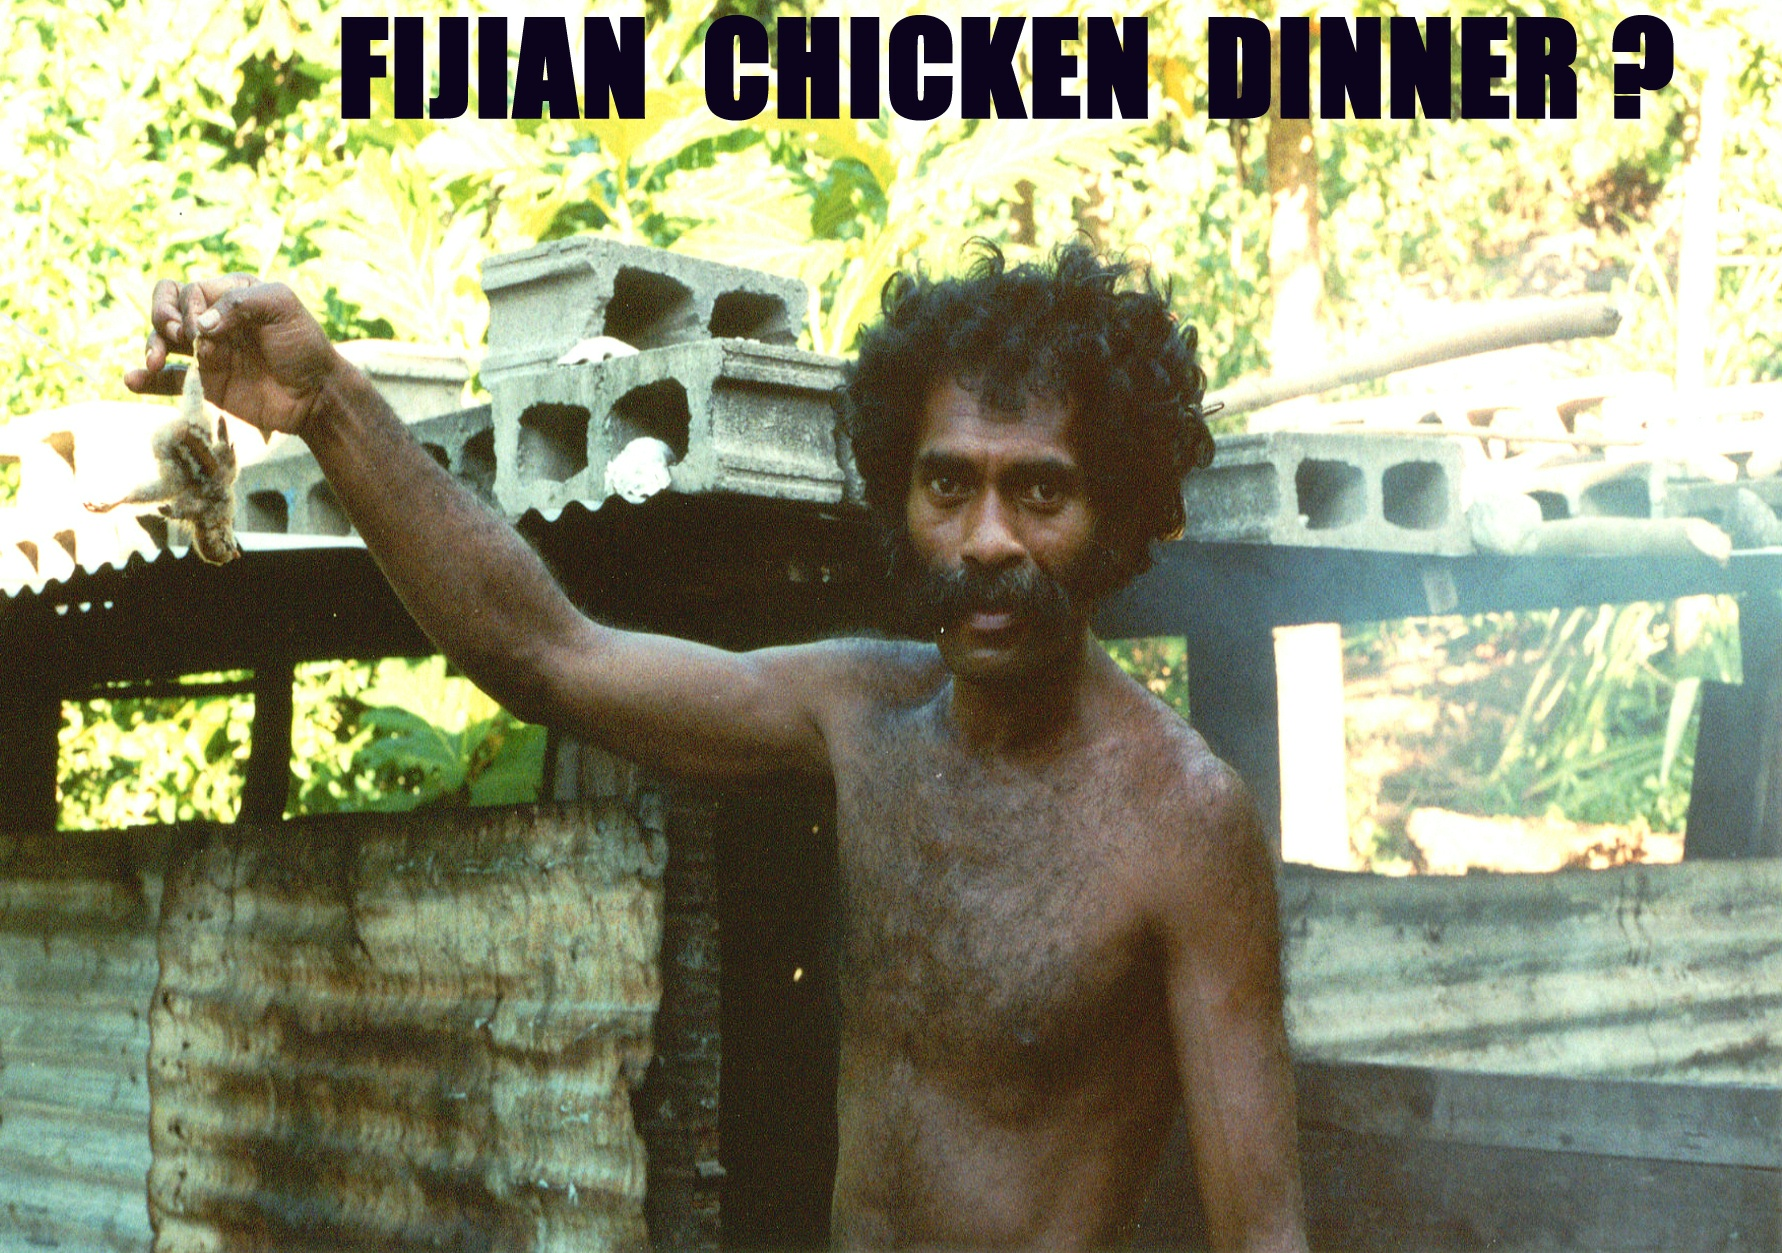 Fiji Chicken Dinner